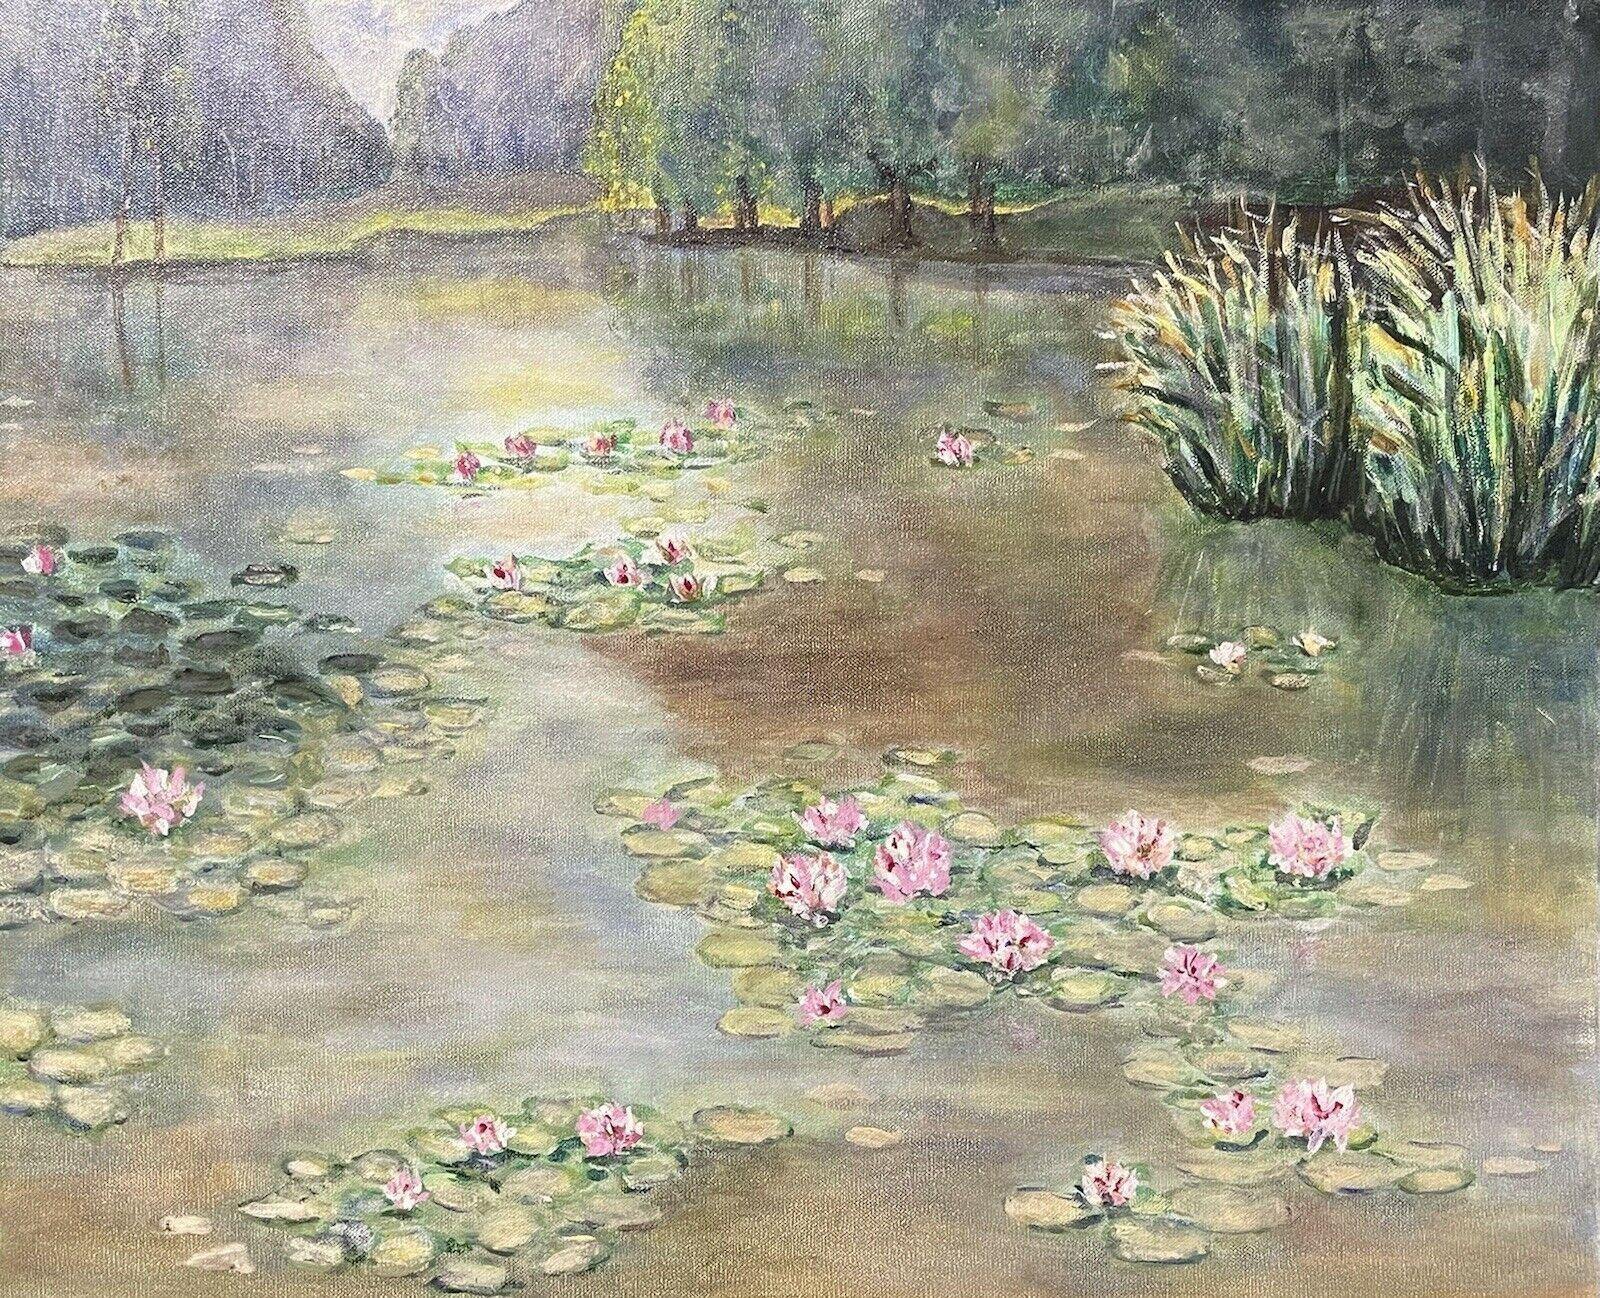 VINTAGE FRENCH IMPRESSIONIST LARGE OIL ON CANVAS - WATERLILY POND LES NYMPHEAS